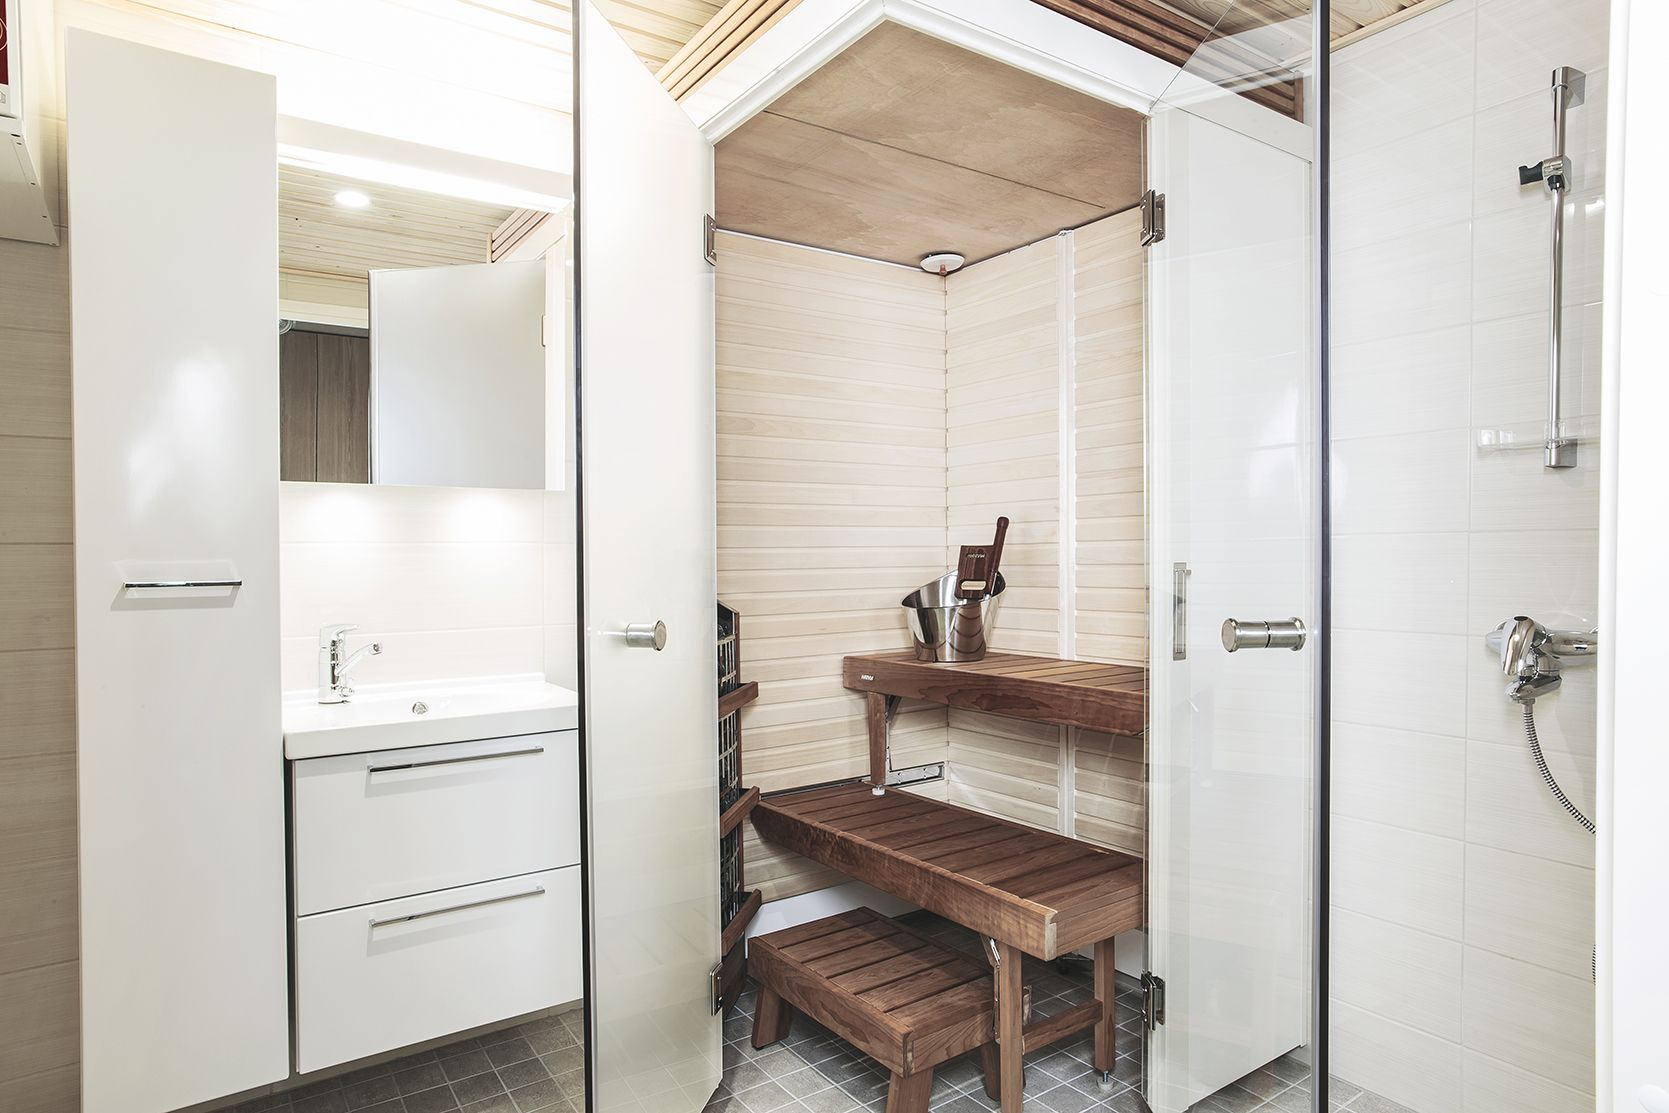 With Foldable Bathroom Sauna You Can Truly Use Every Square Feet Of Your  Bathroom. Having The Very Own Comfort Zone In Your Home Is A Part Of Every  Day ...